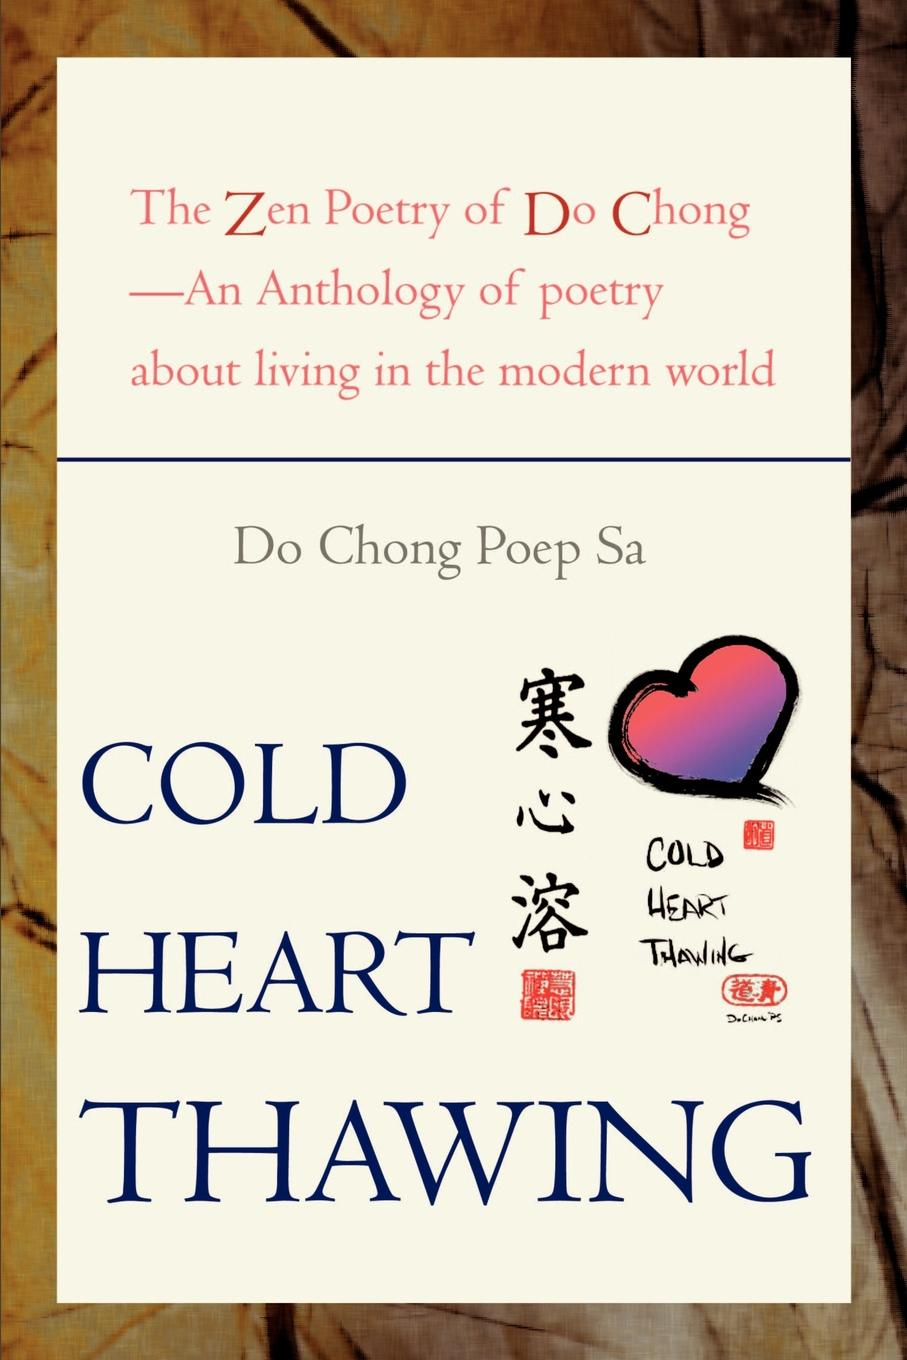 Do Chong Poep Sa Cold Heart Thawing. The Zen Poetry of Do Chong--An Anthology of Poetry about Living in the Modern World do chong poep sa cold heart thawing the zen poetry of do chong an anthology of poetry about living in the modern world